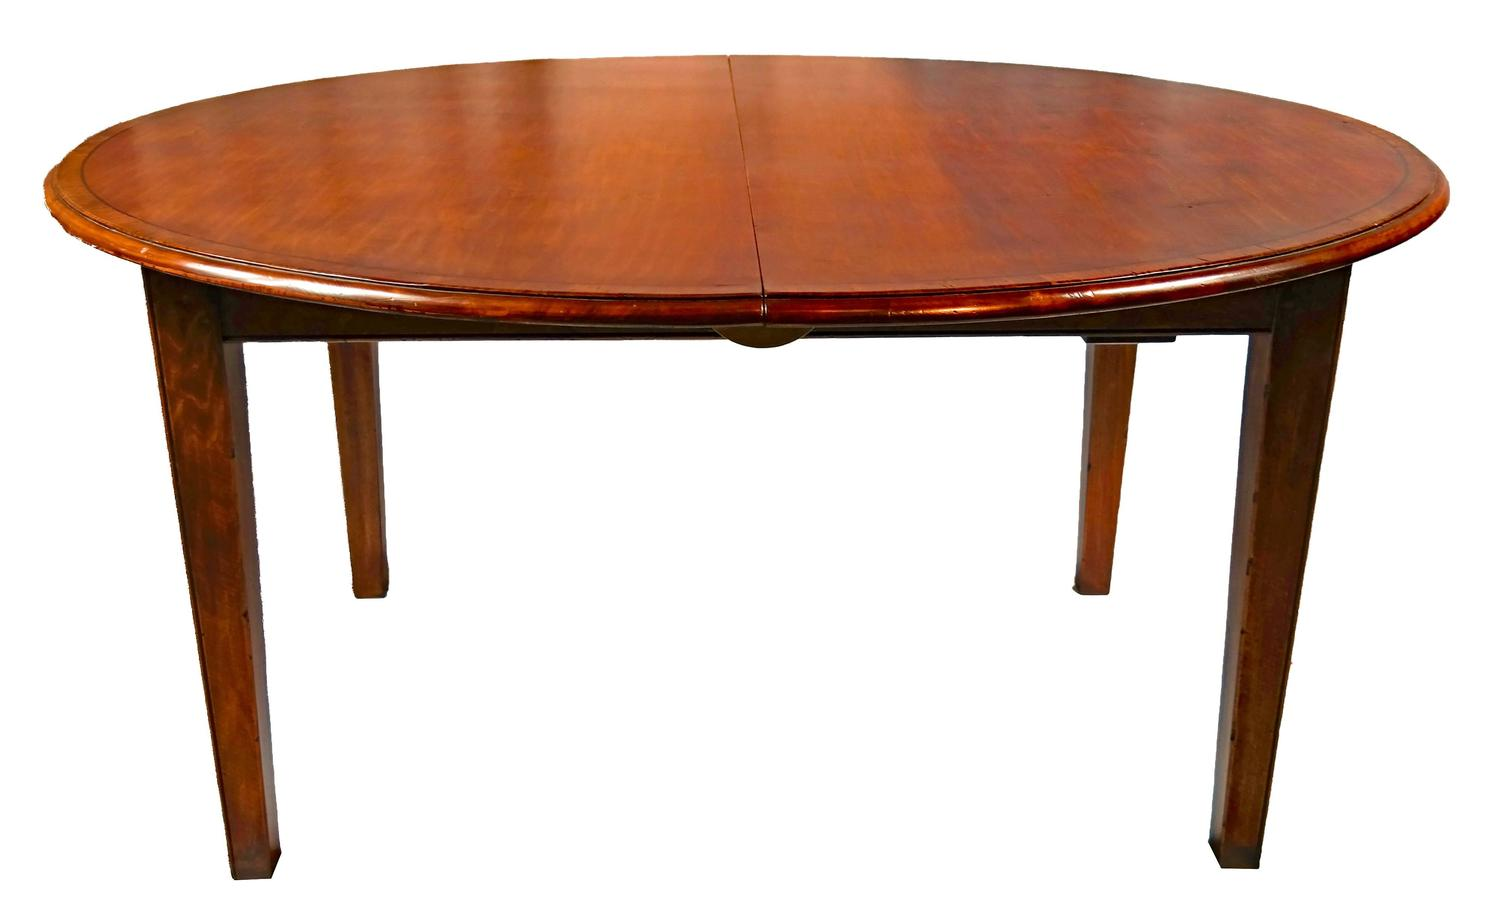 Round cherry yewwood banded dining table for sale at 1stdibs for 6 foot round dining table